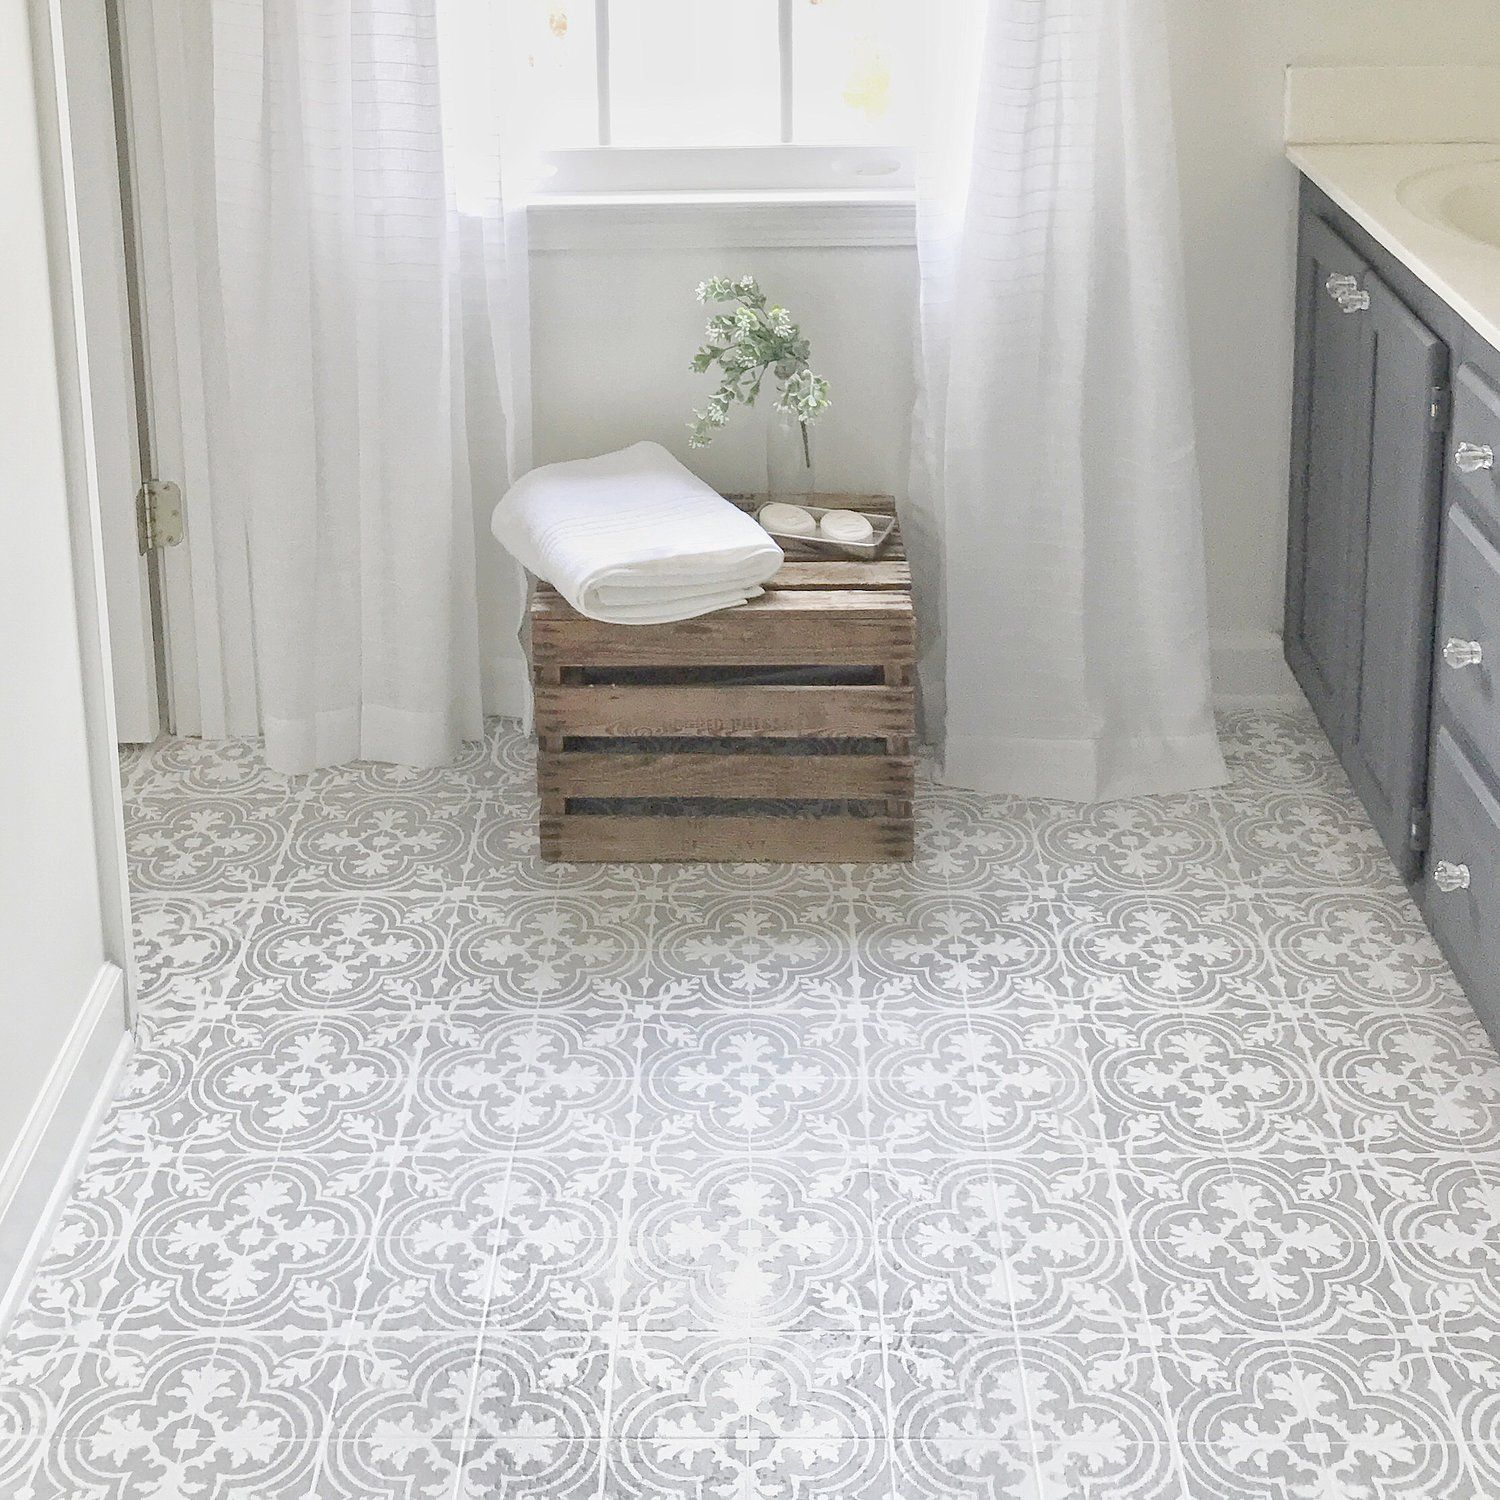 how to paint your linoleum or tile floors to look like patterned cement tiles full tutorial. Black Bedroom Furniture Sets. Home Design Ideas